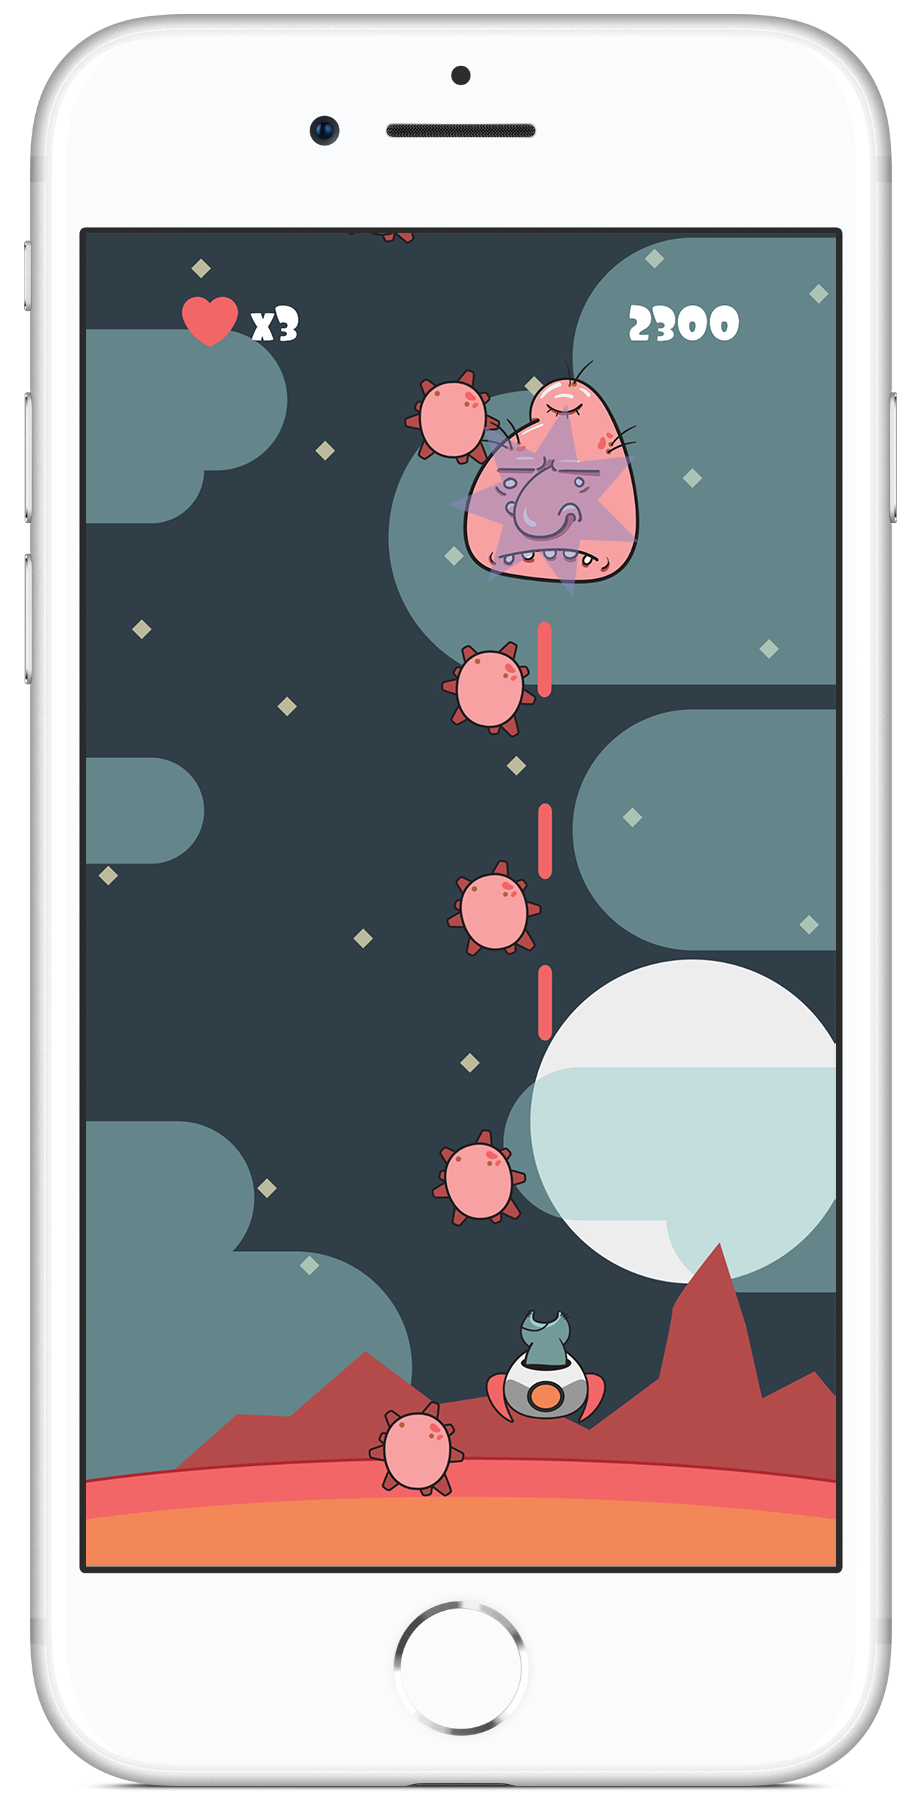 iOS-games2-iPhone8.png